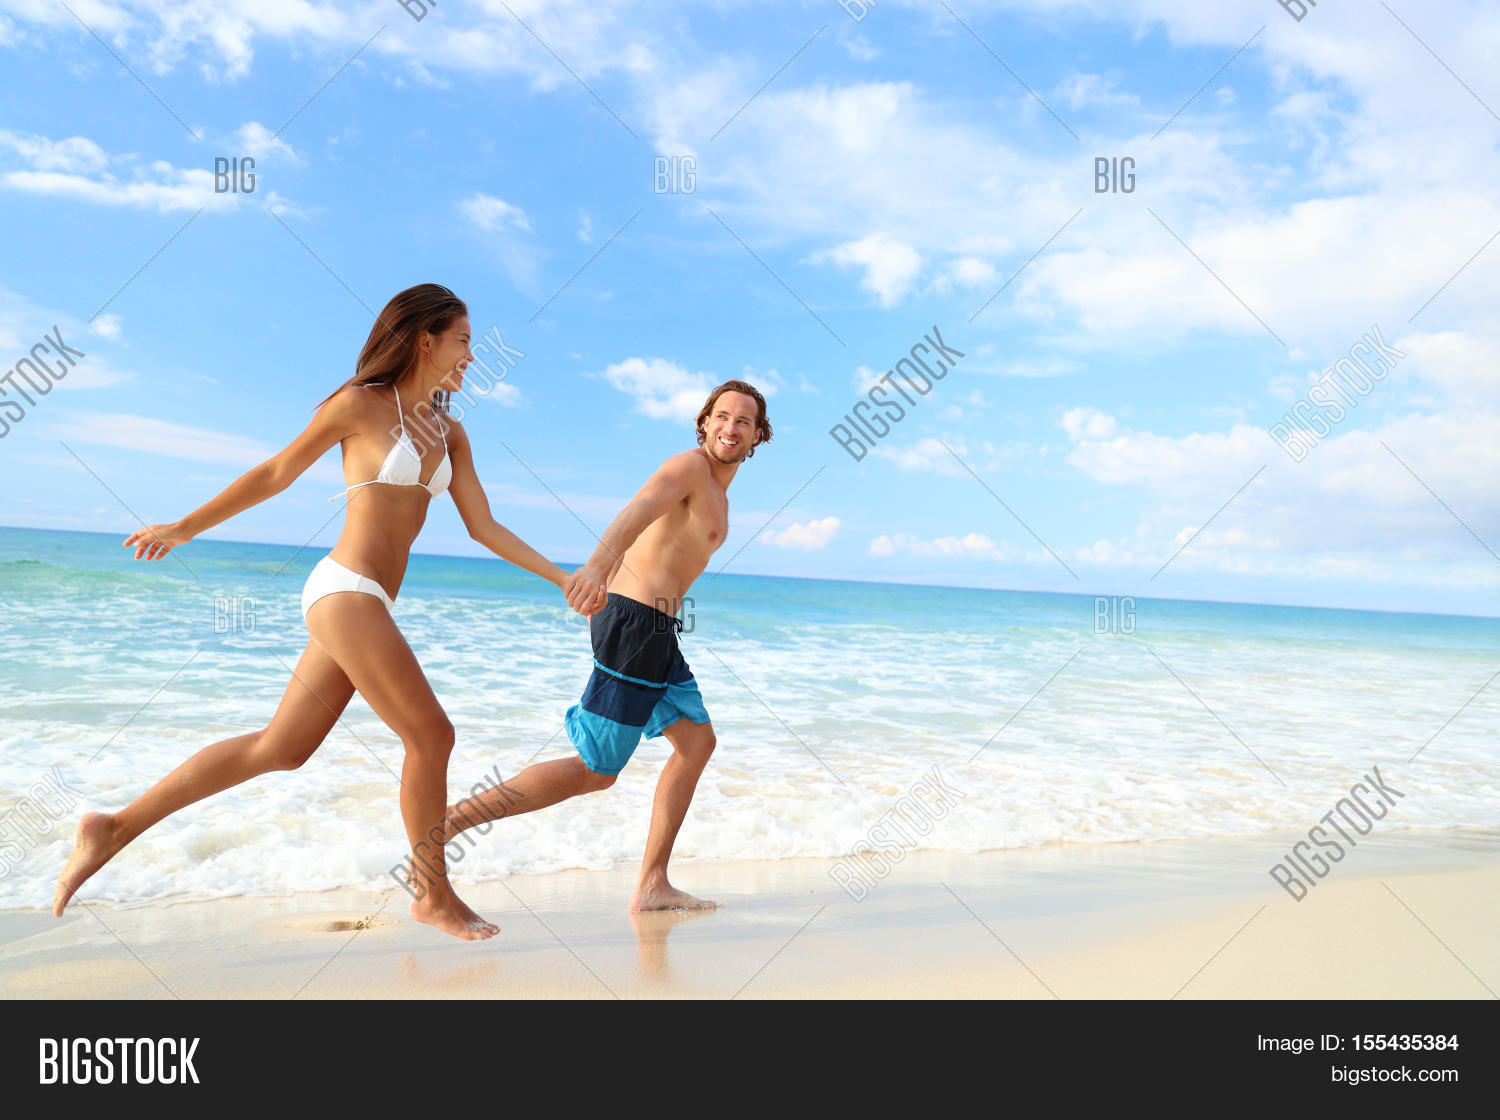 Happy Beach Couple Vacation Getaway Young People In Bikini And Swimwear Running Holding Hands Together